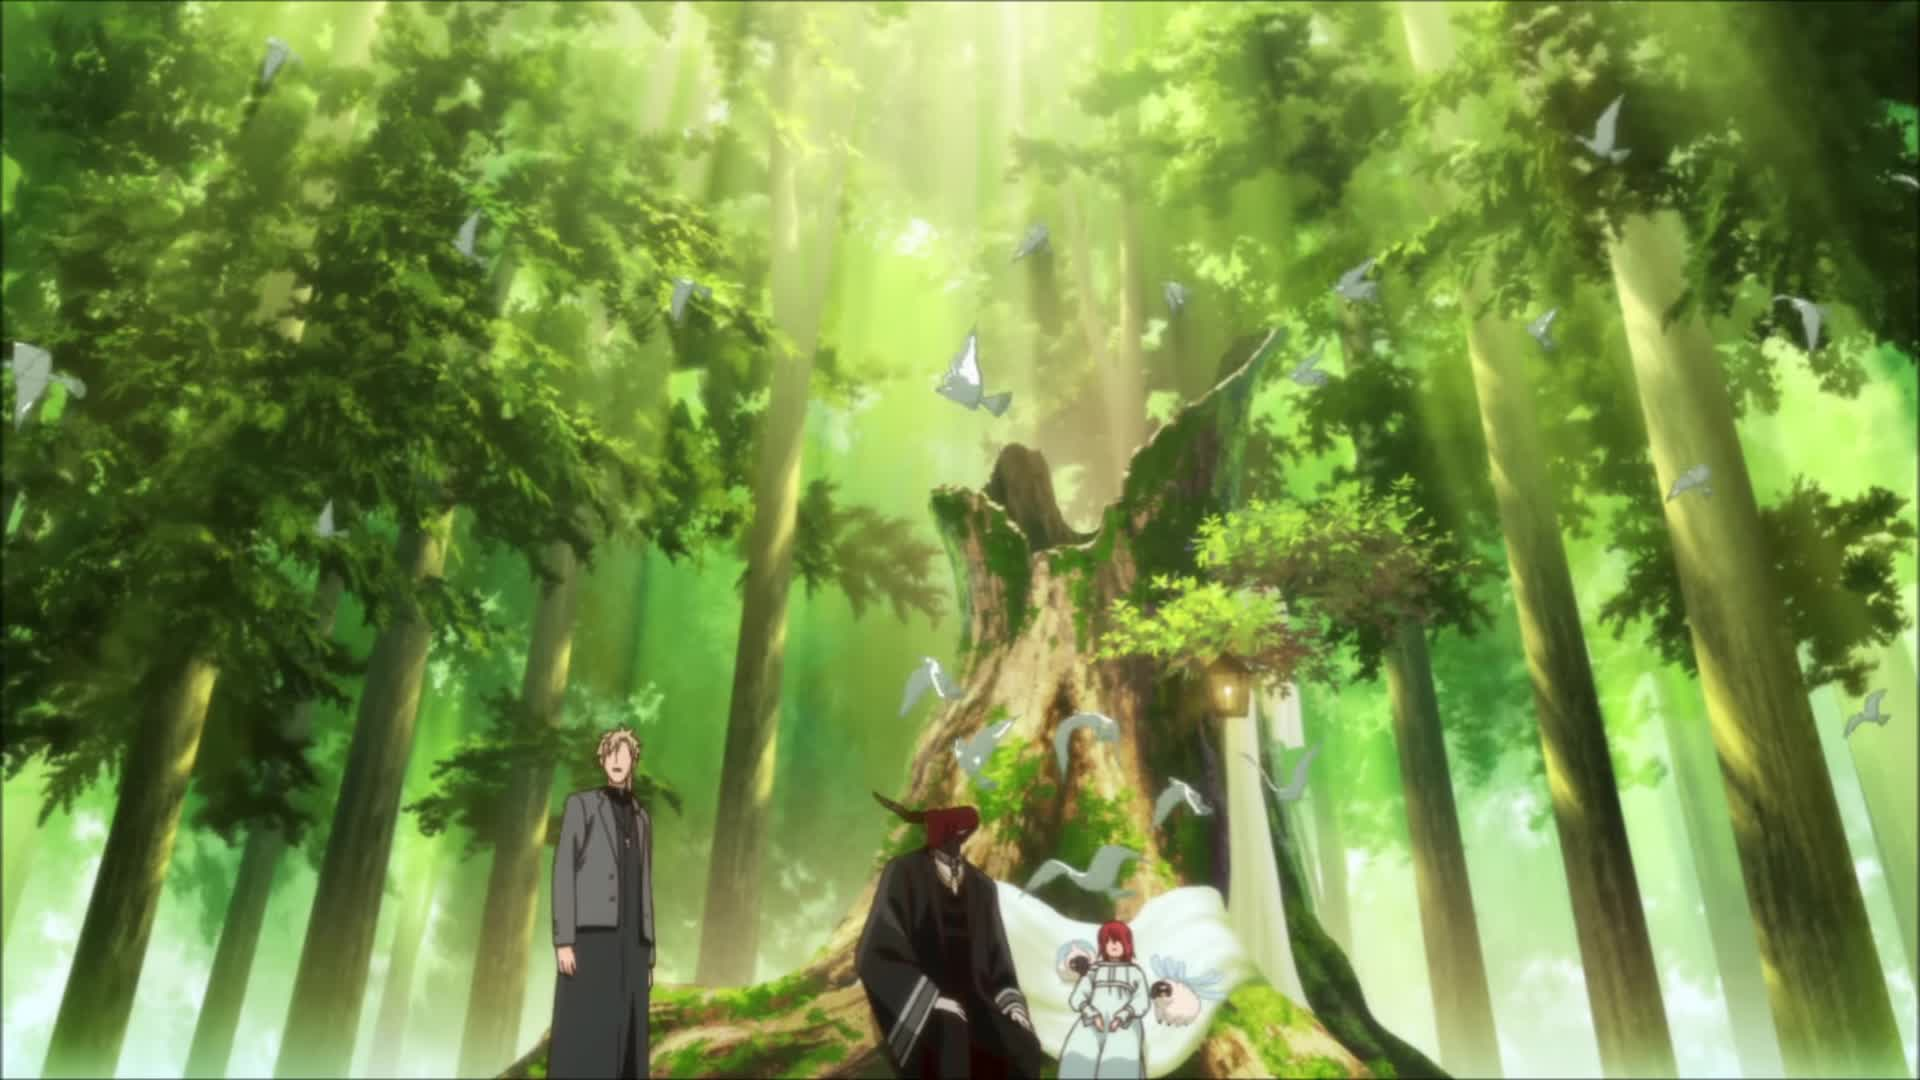 The Ancient Magus Bride The Forest Gif By Angel Adfectus Gfycat